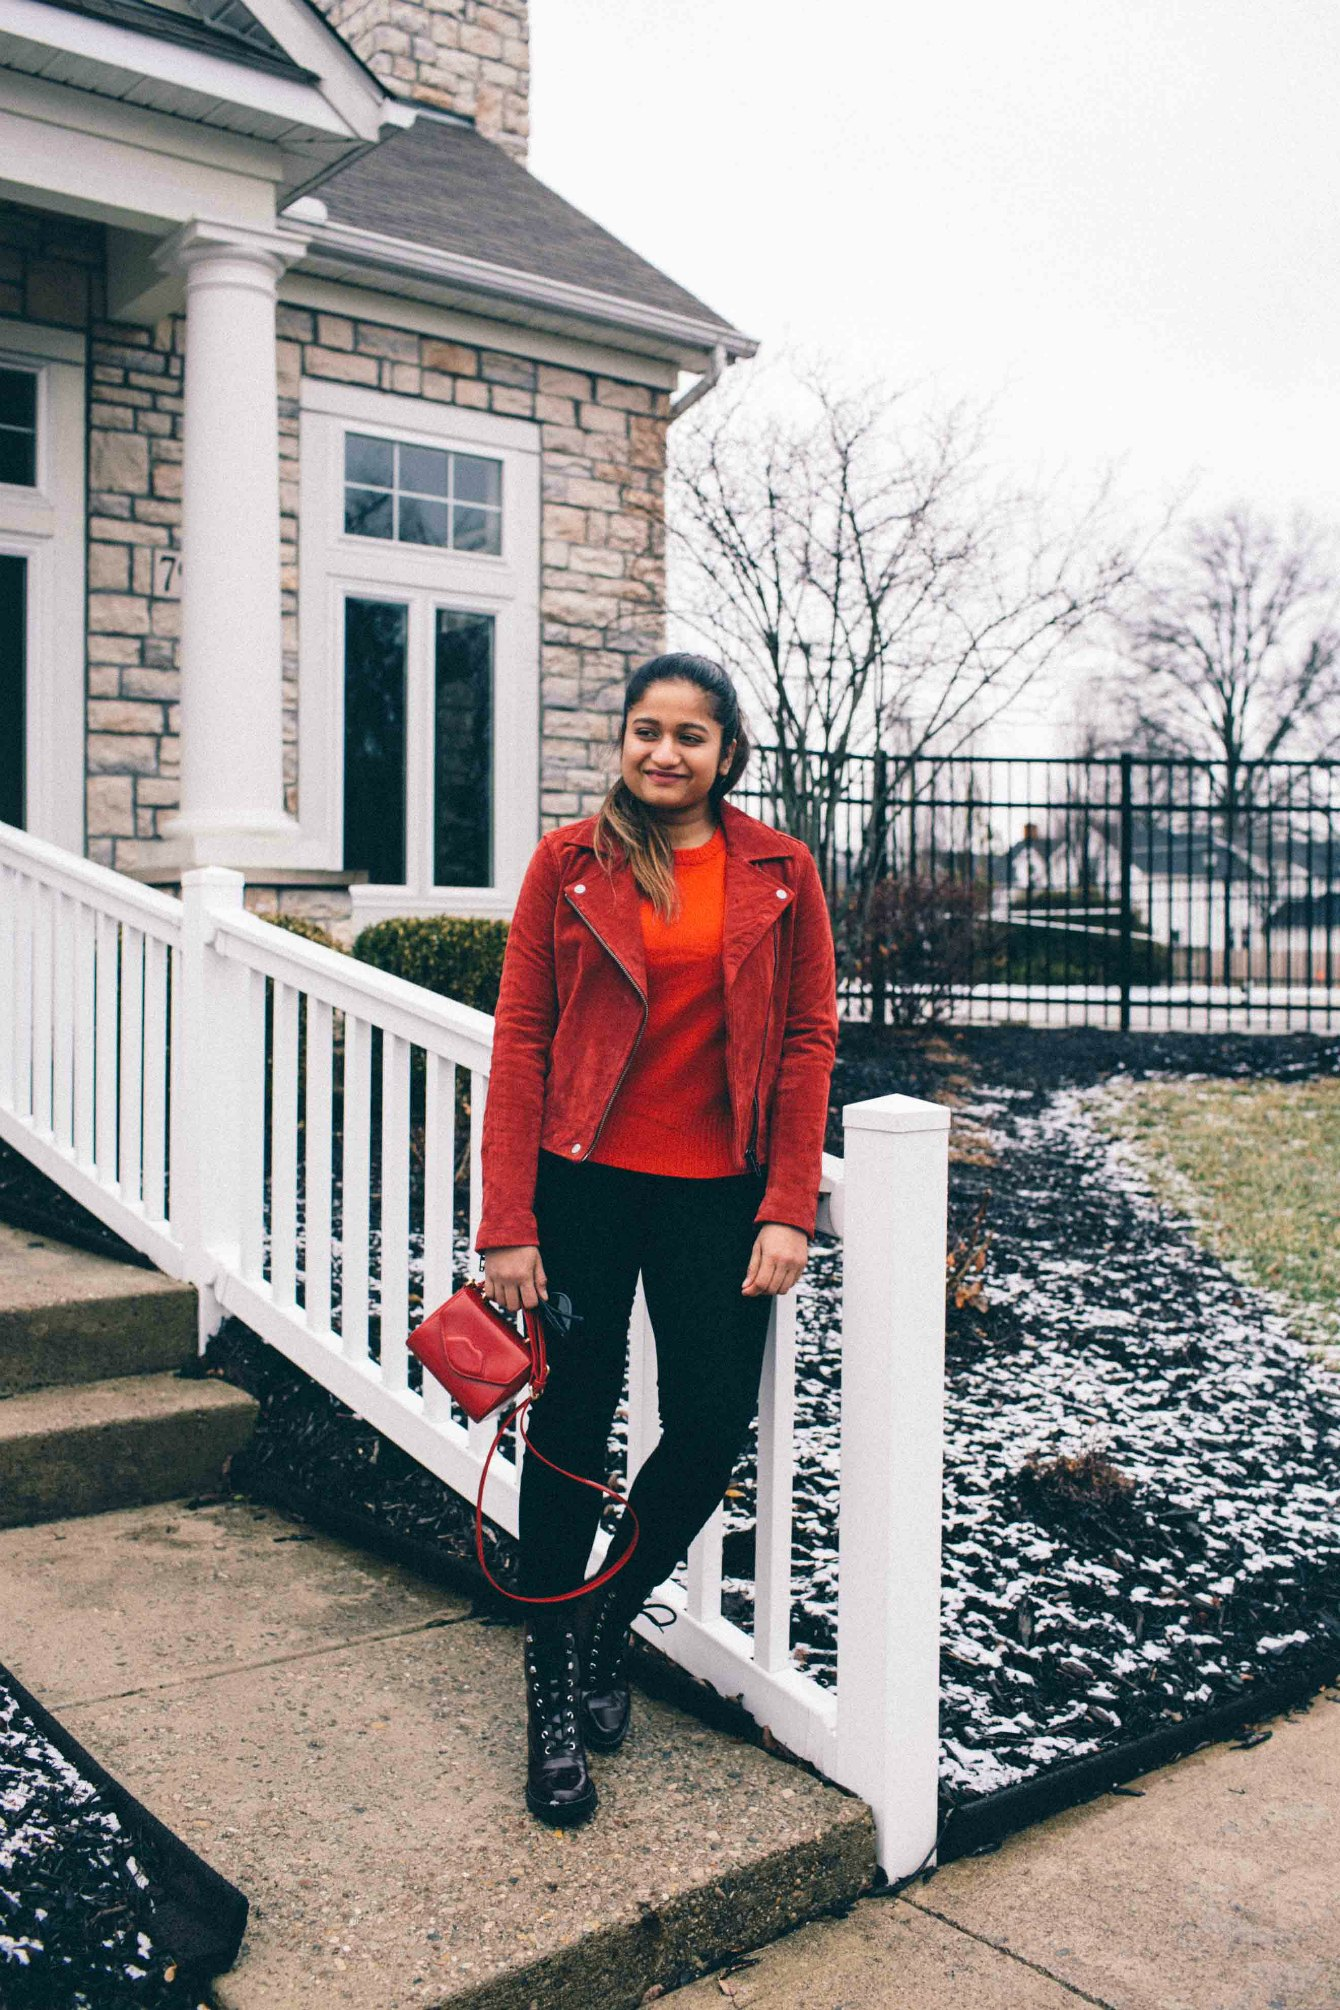 Lifestyle Blog Dreaming Loud wearing Blank nbc red suede Moto jacket - Spring Outfit Ideas featured by popular Ohio modest fashion blogger, Dreaming Loud